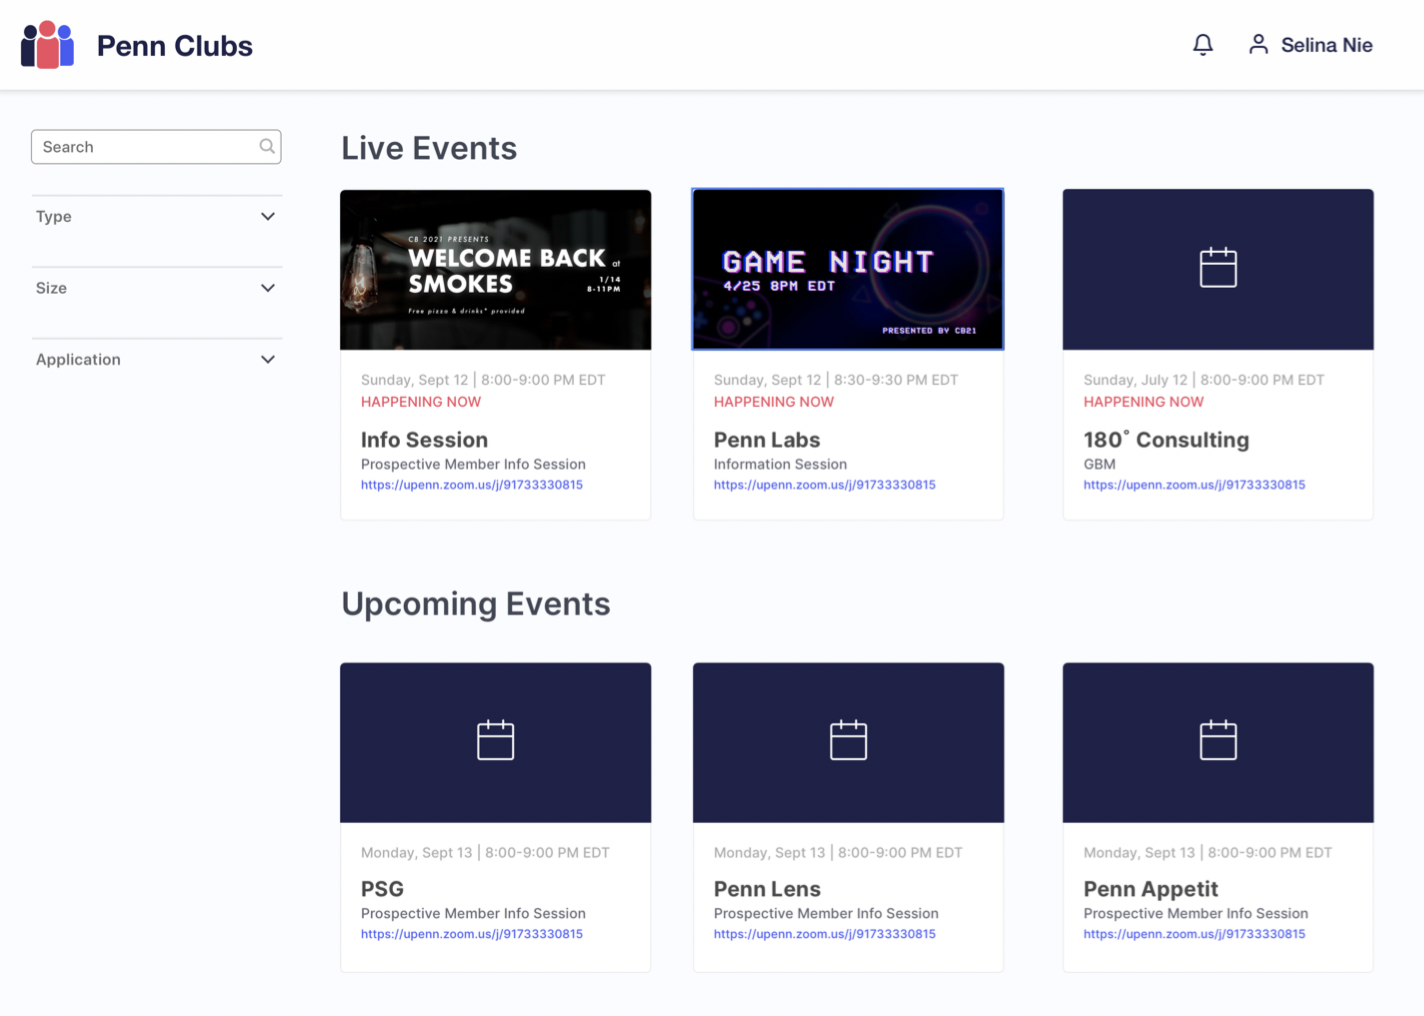 Screenshot of Penn Clubs's live event page